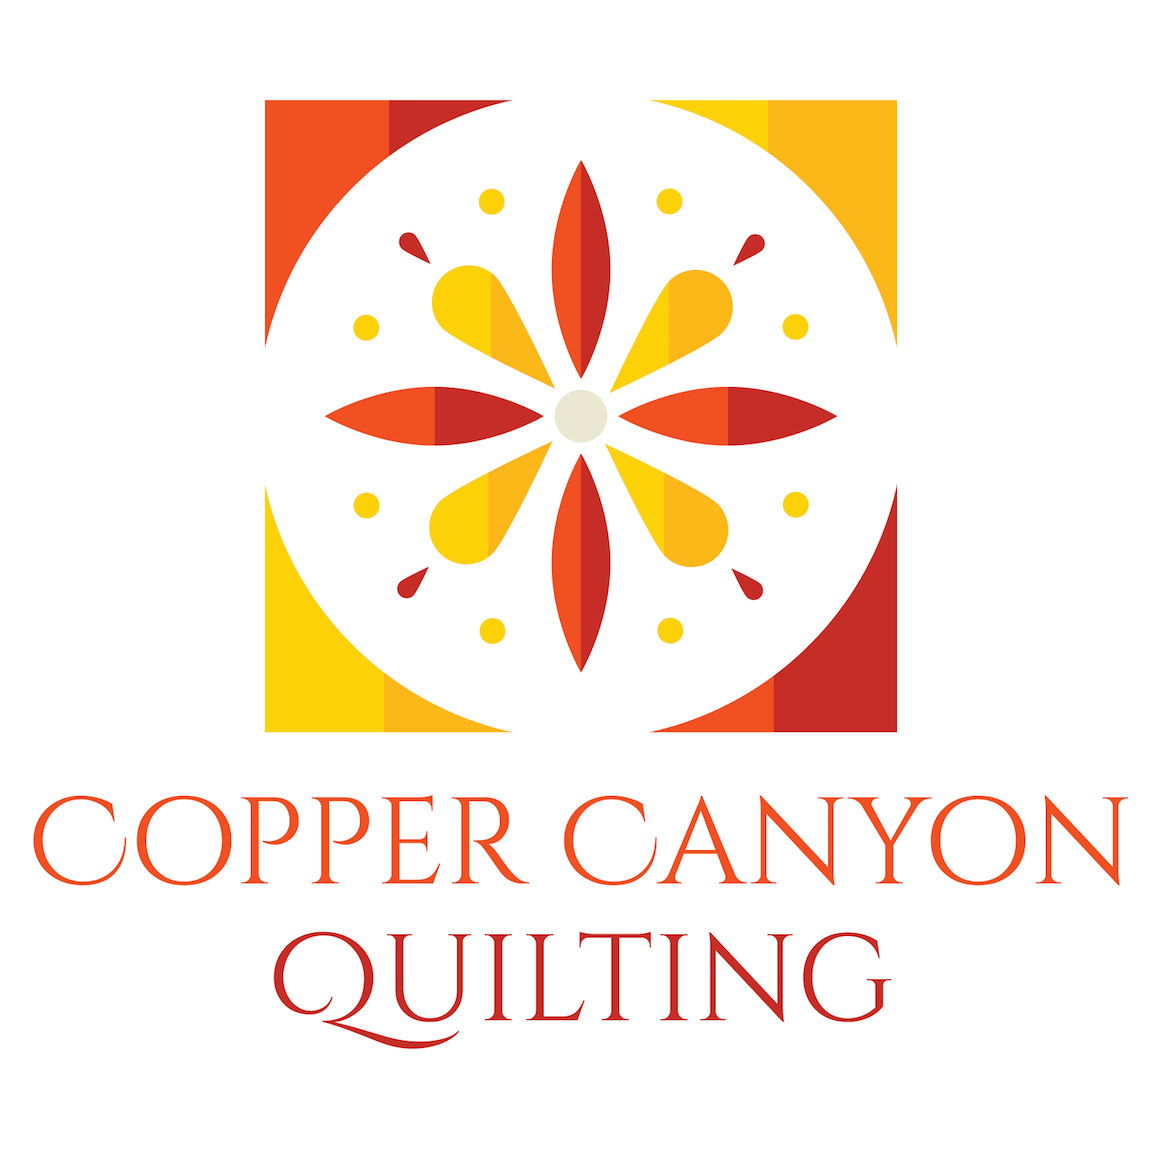 Copper Canyon Quilting logo